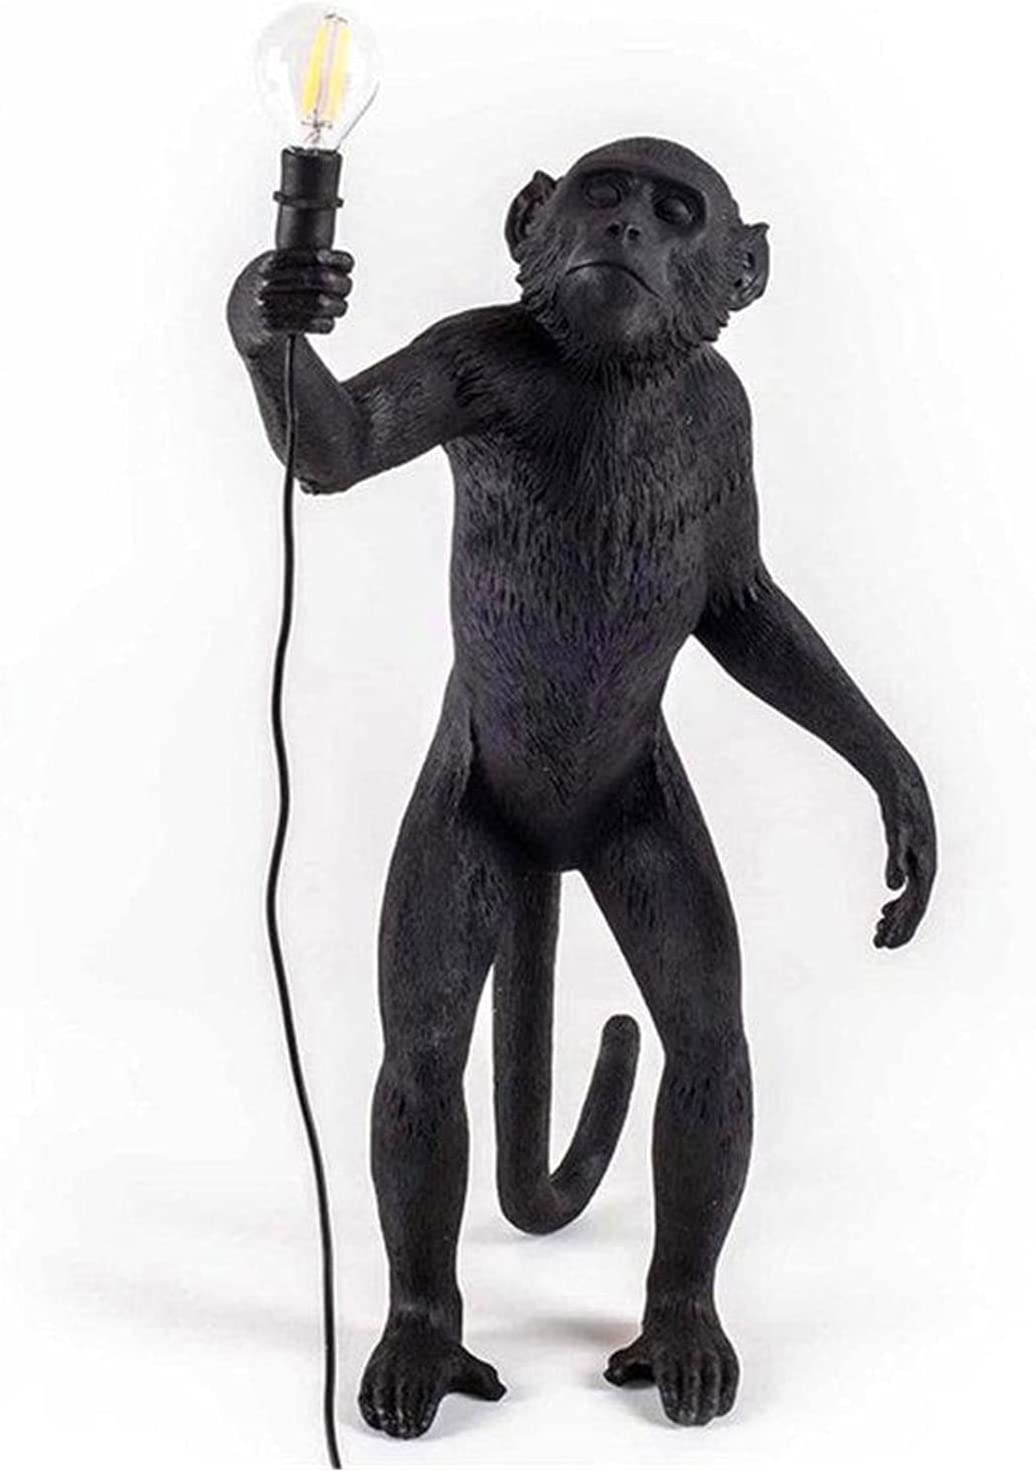 Fuxwlgs Floor lamp Nordic Lamp Recommended Quality inspection Creative Monkey Personality